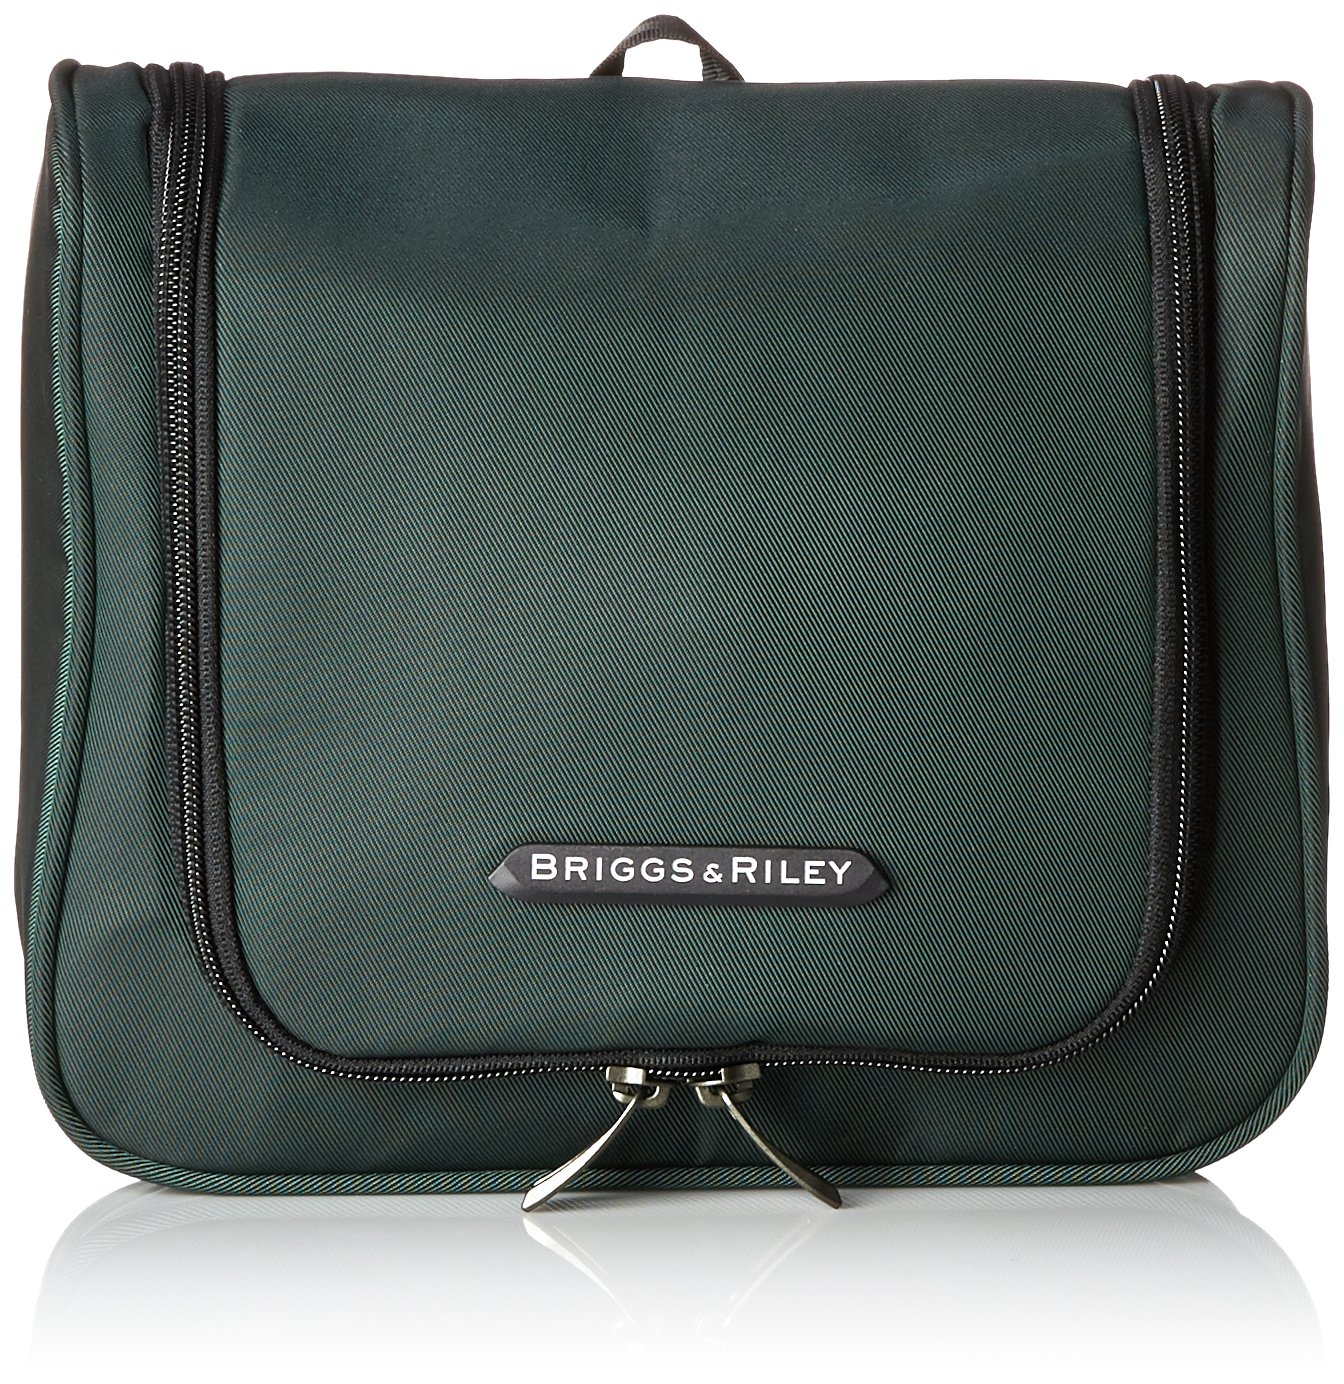 Briggs & Riley Hanging Toiletry Kit, Crimson, One Size TT301-40